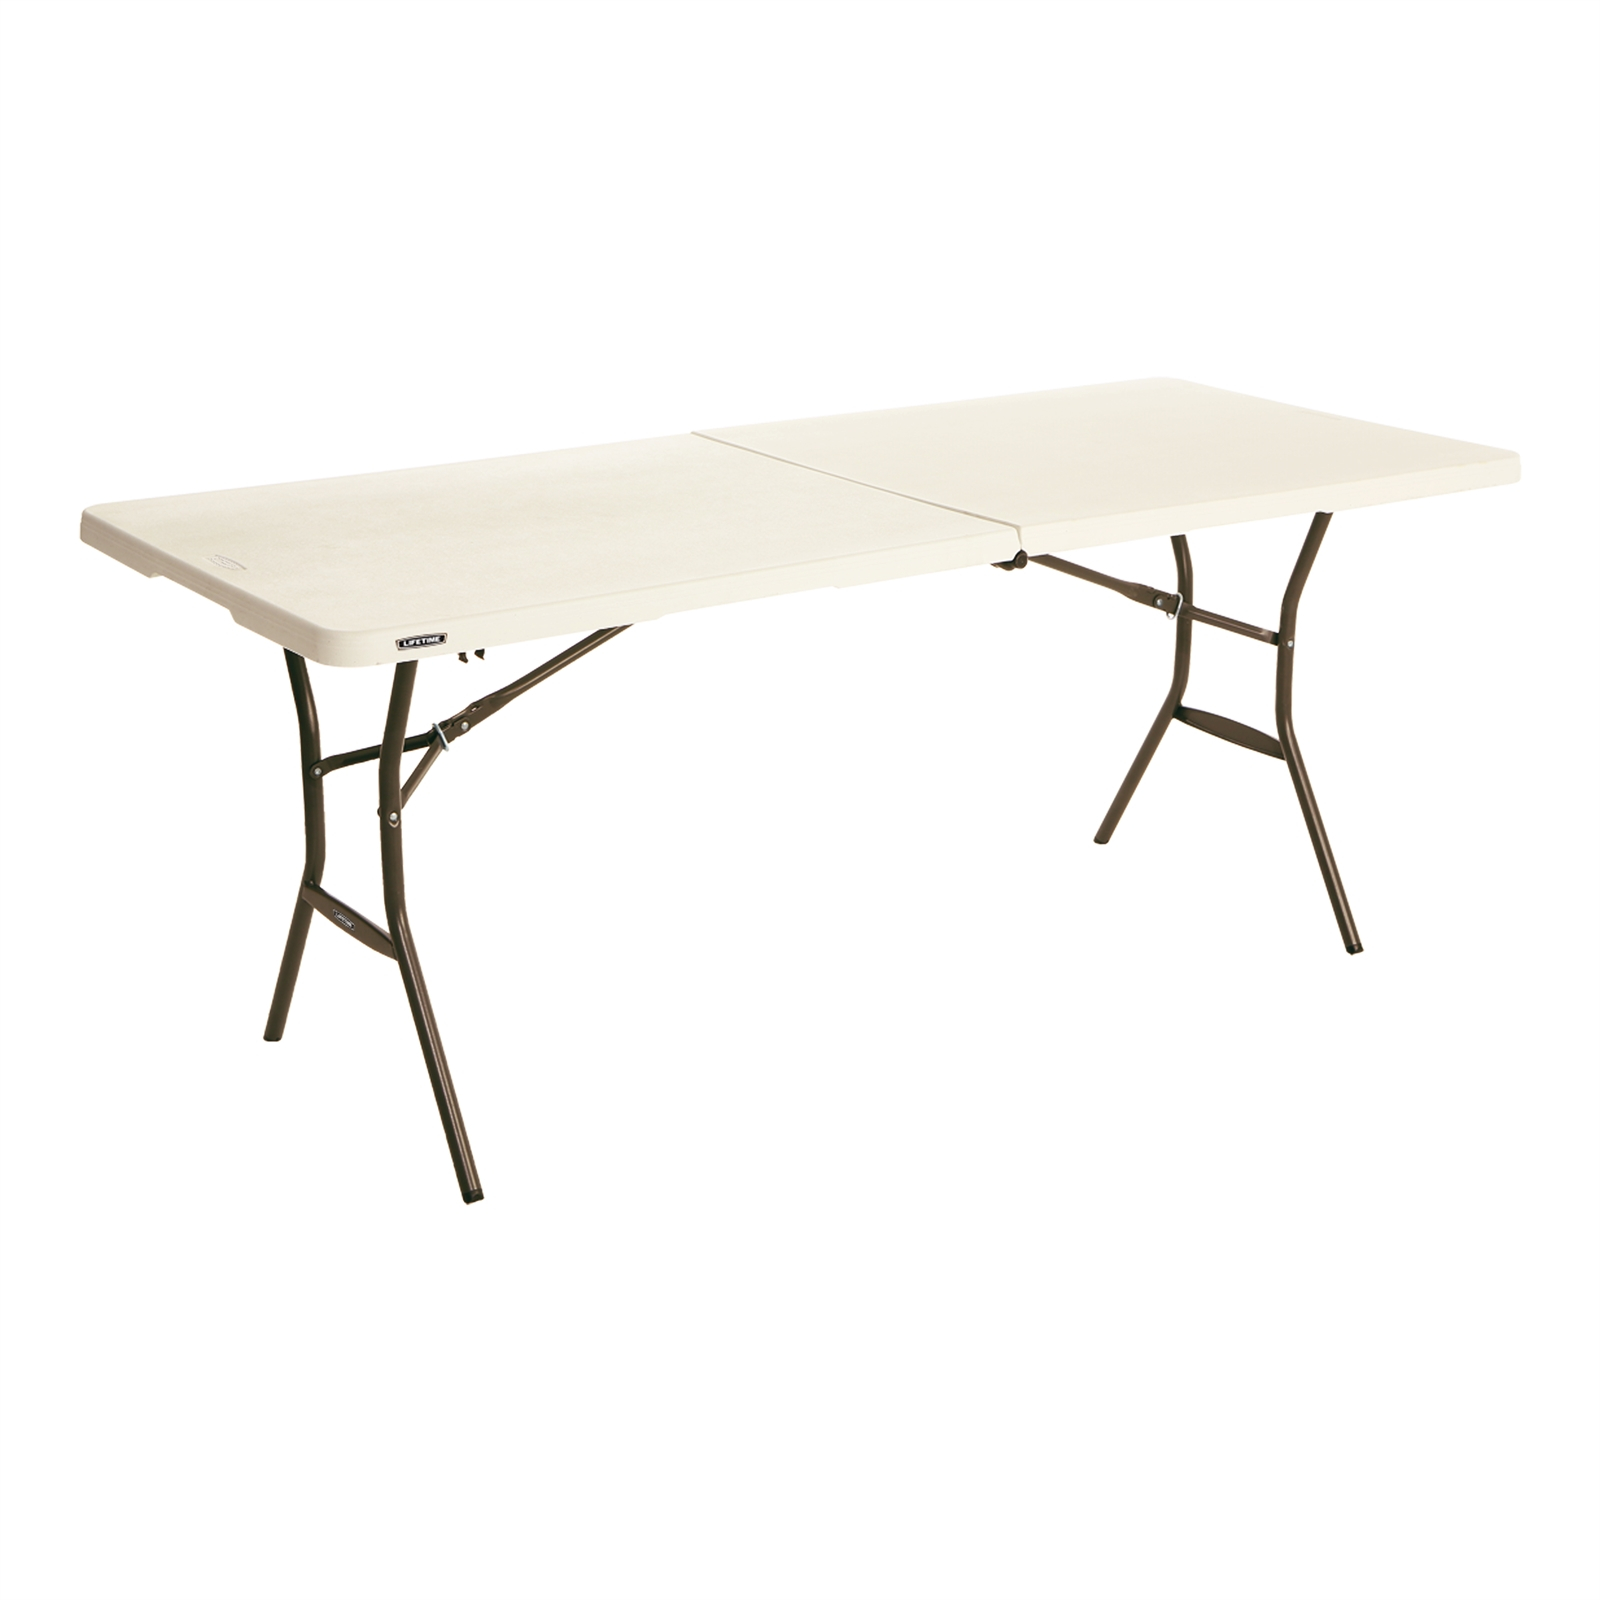 Plastic Folding Table with size 1600 X 1600